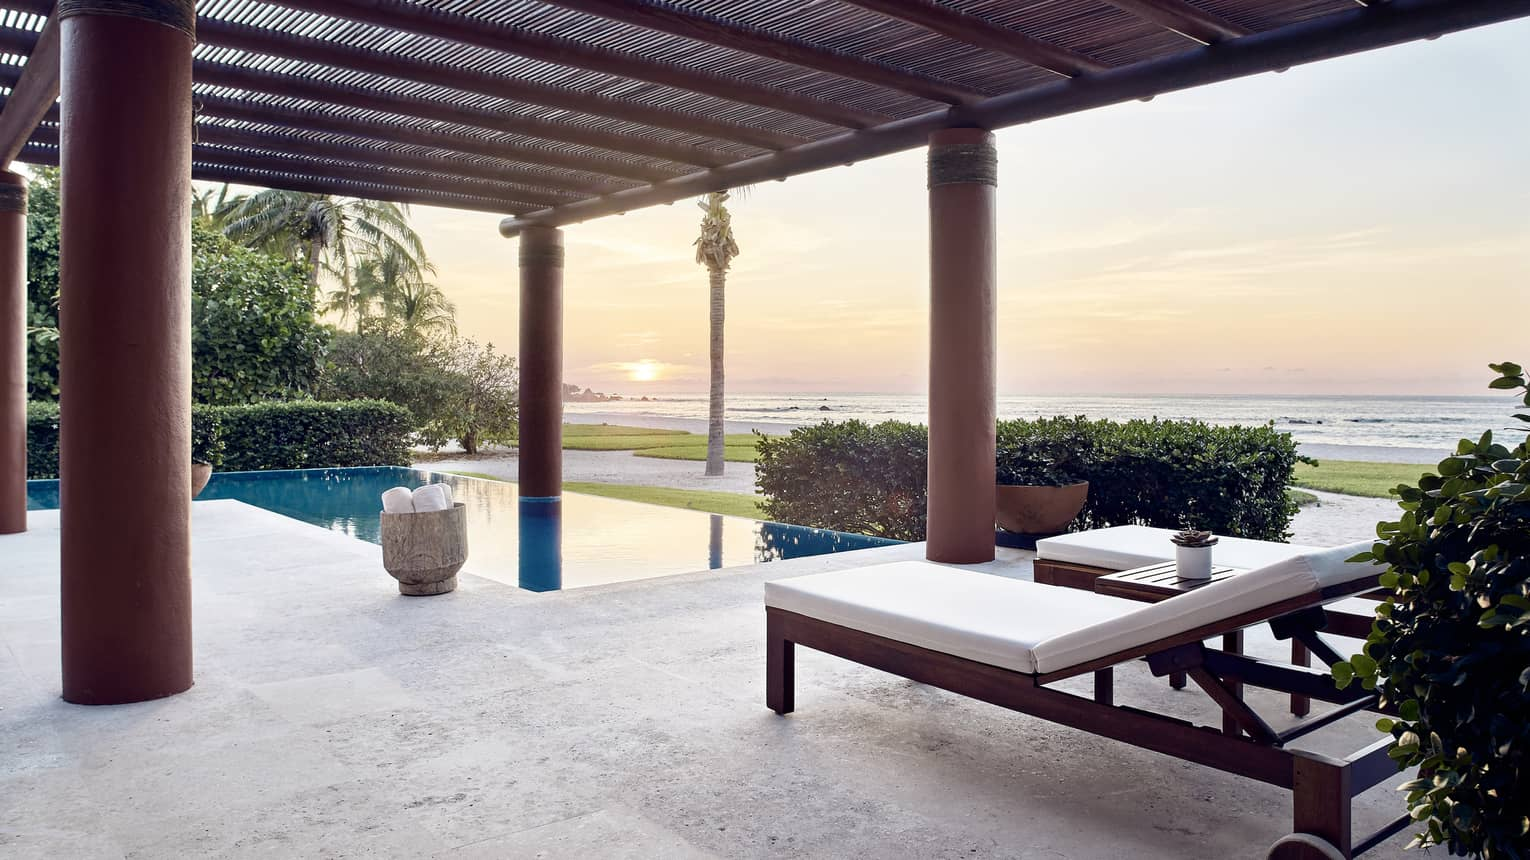 Outdoor terrace with lounge chairs, private pool, sun setting over the sea